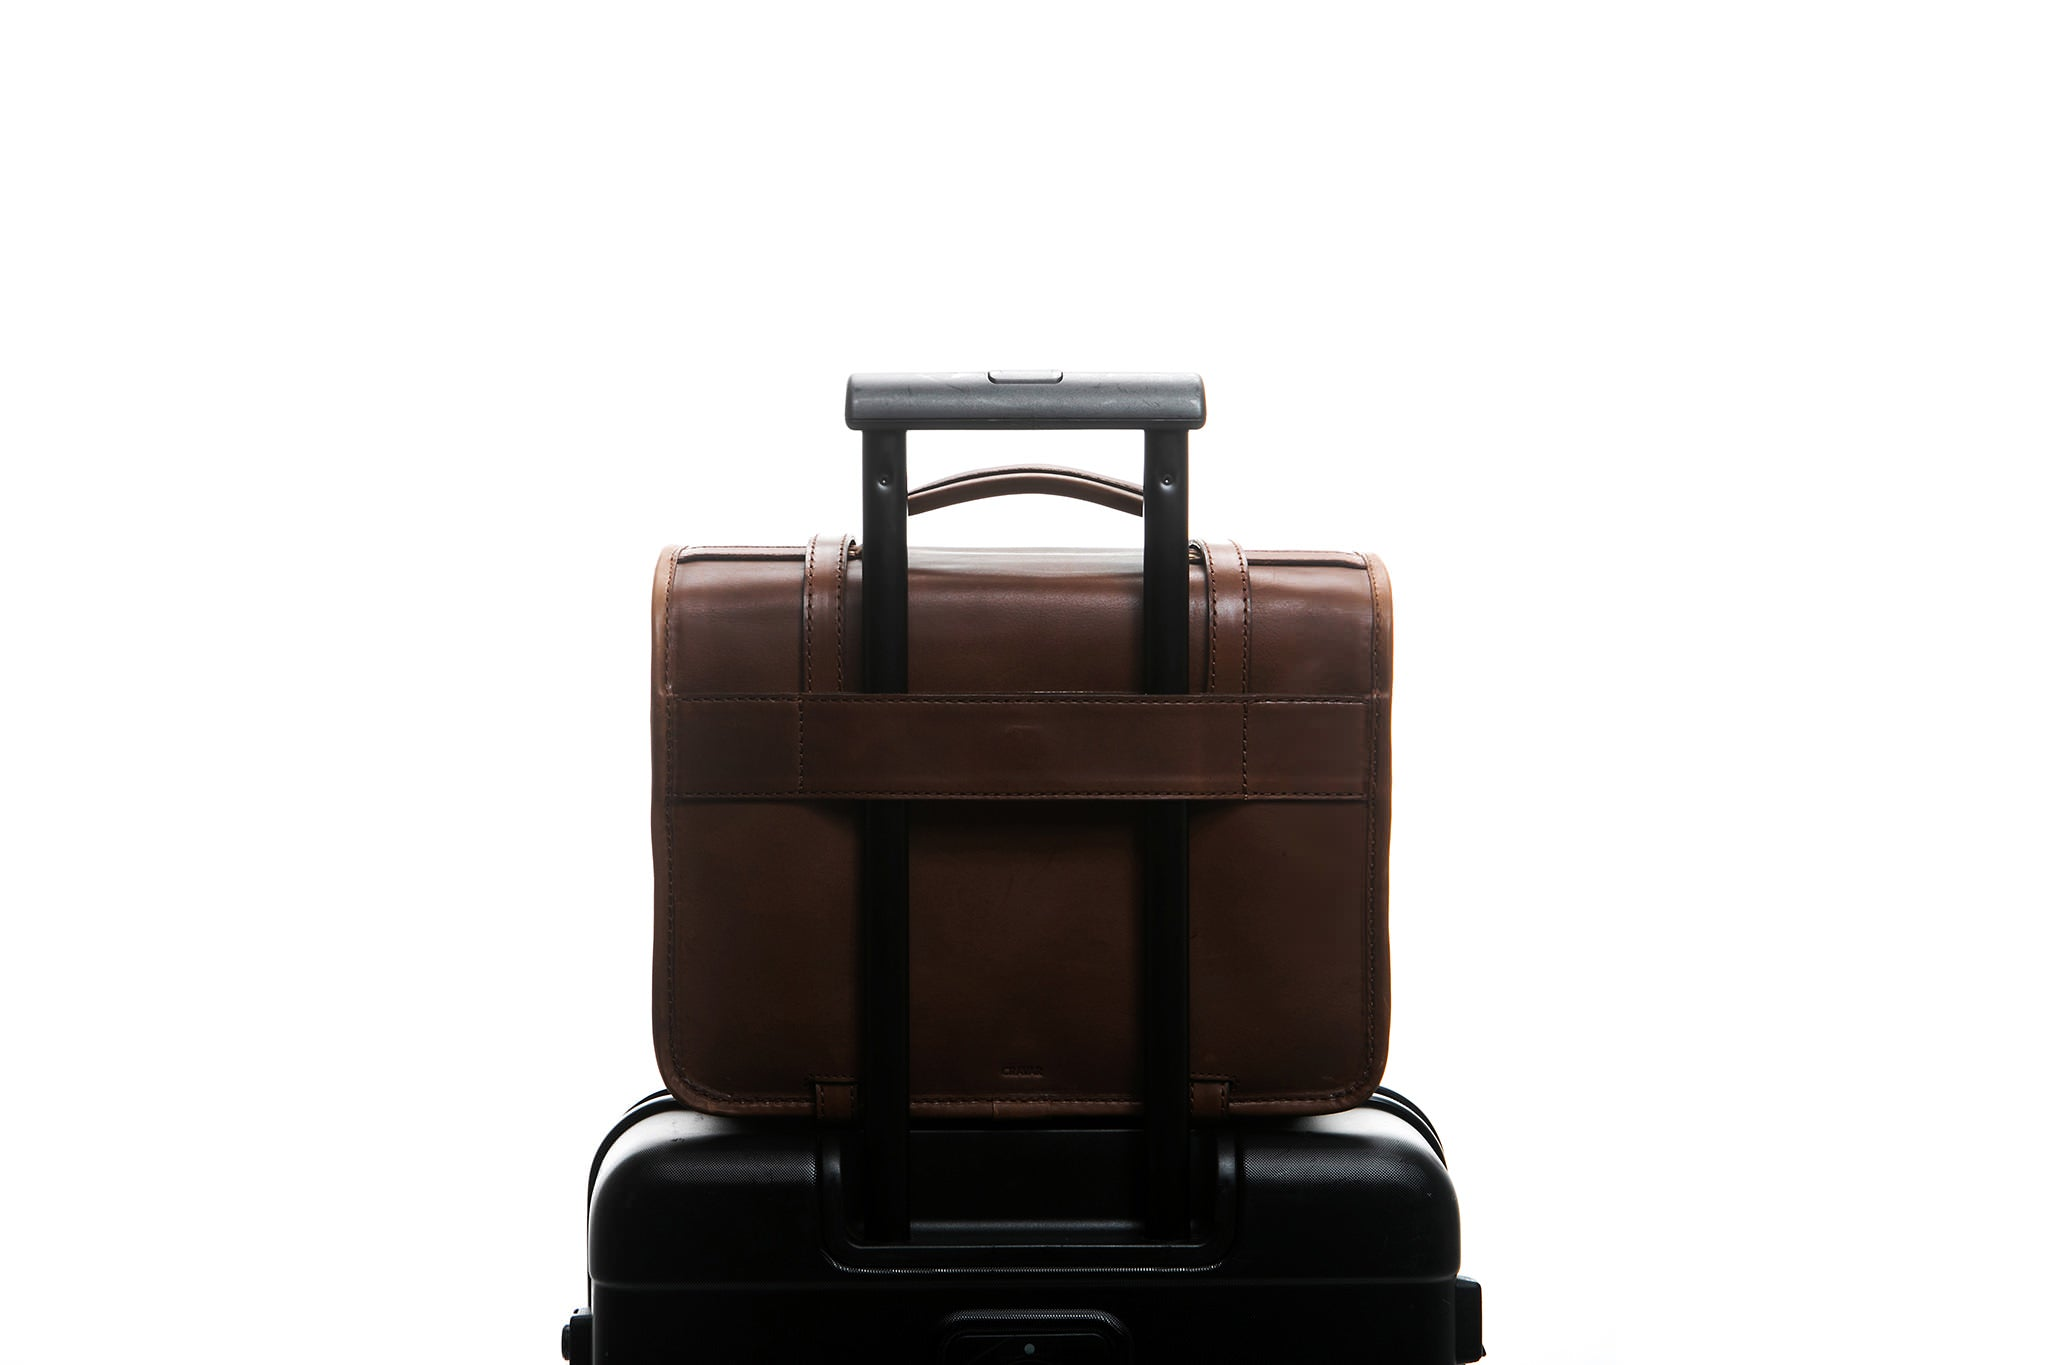 Traveling made easy with a Cravar bag. Function shown here with an older Rana model.